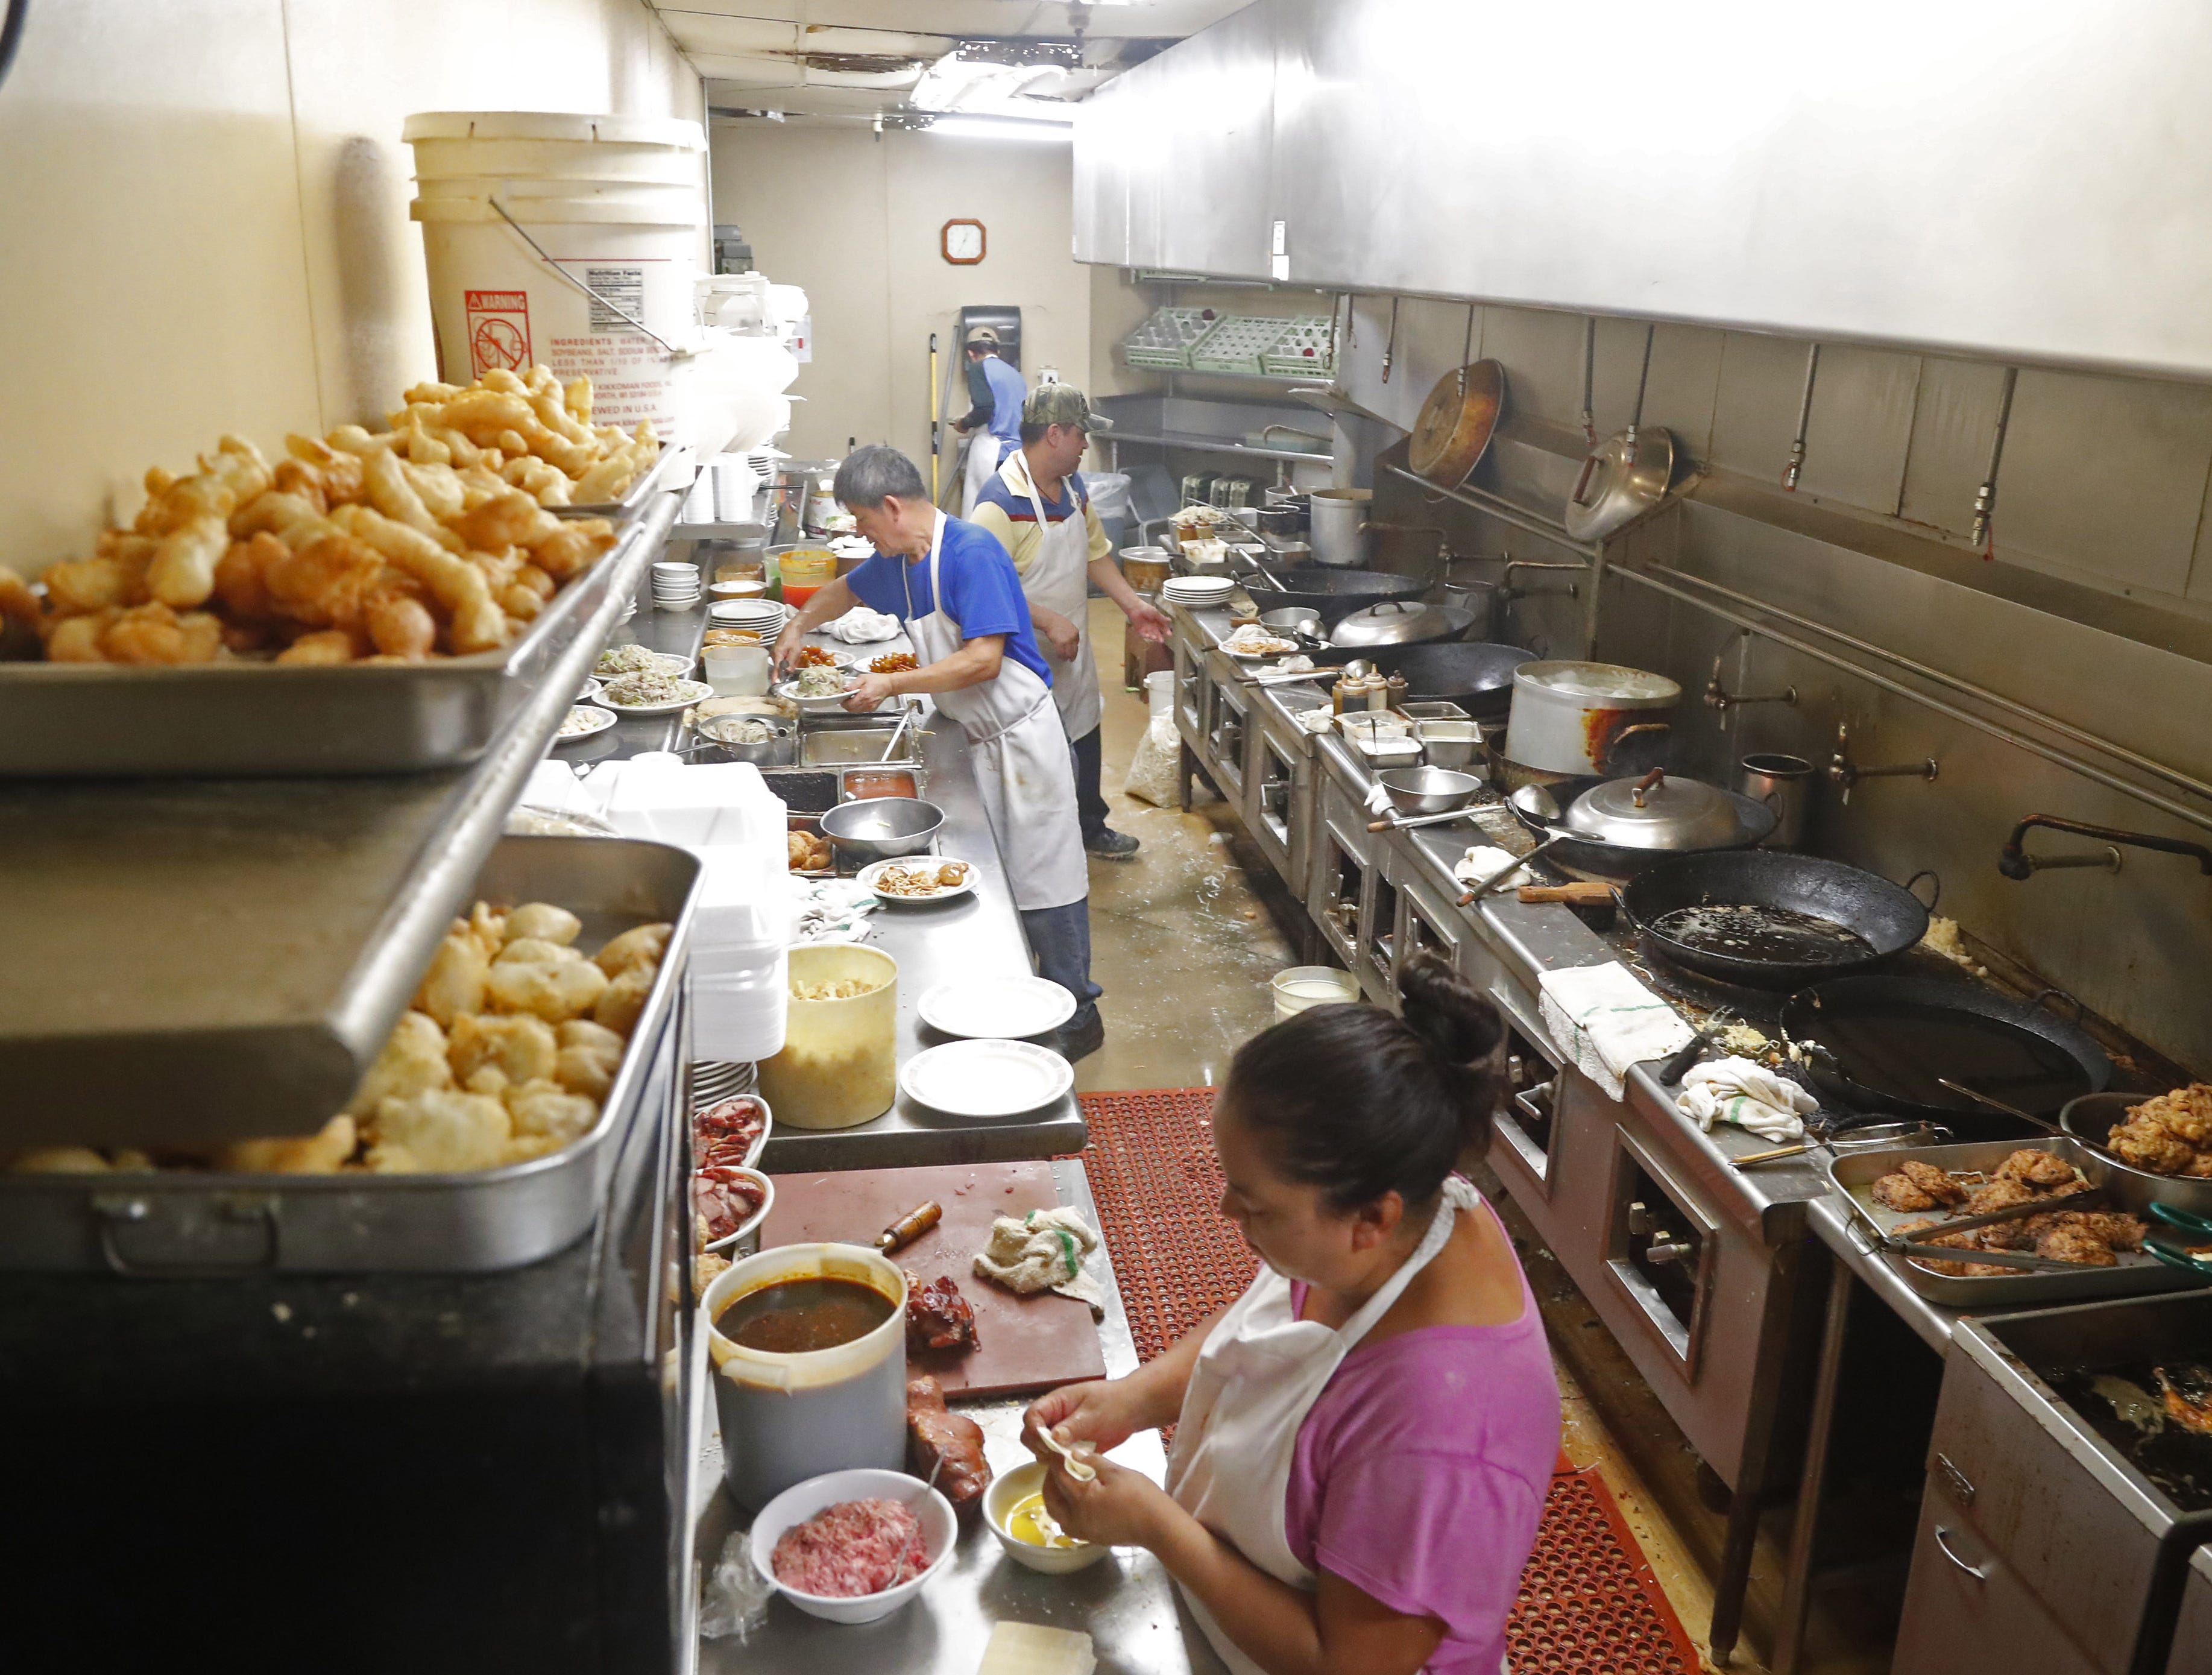 The kitchen cooks up orders on Sing High Chop Suey House's final day open in downtown Phoenix, Ariz. on Sept. 30, 2018.